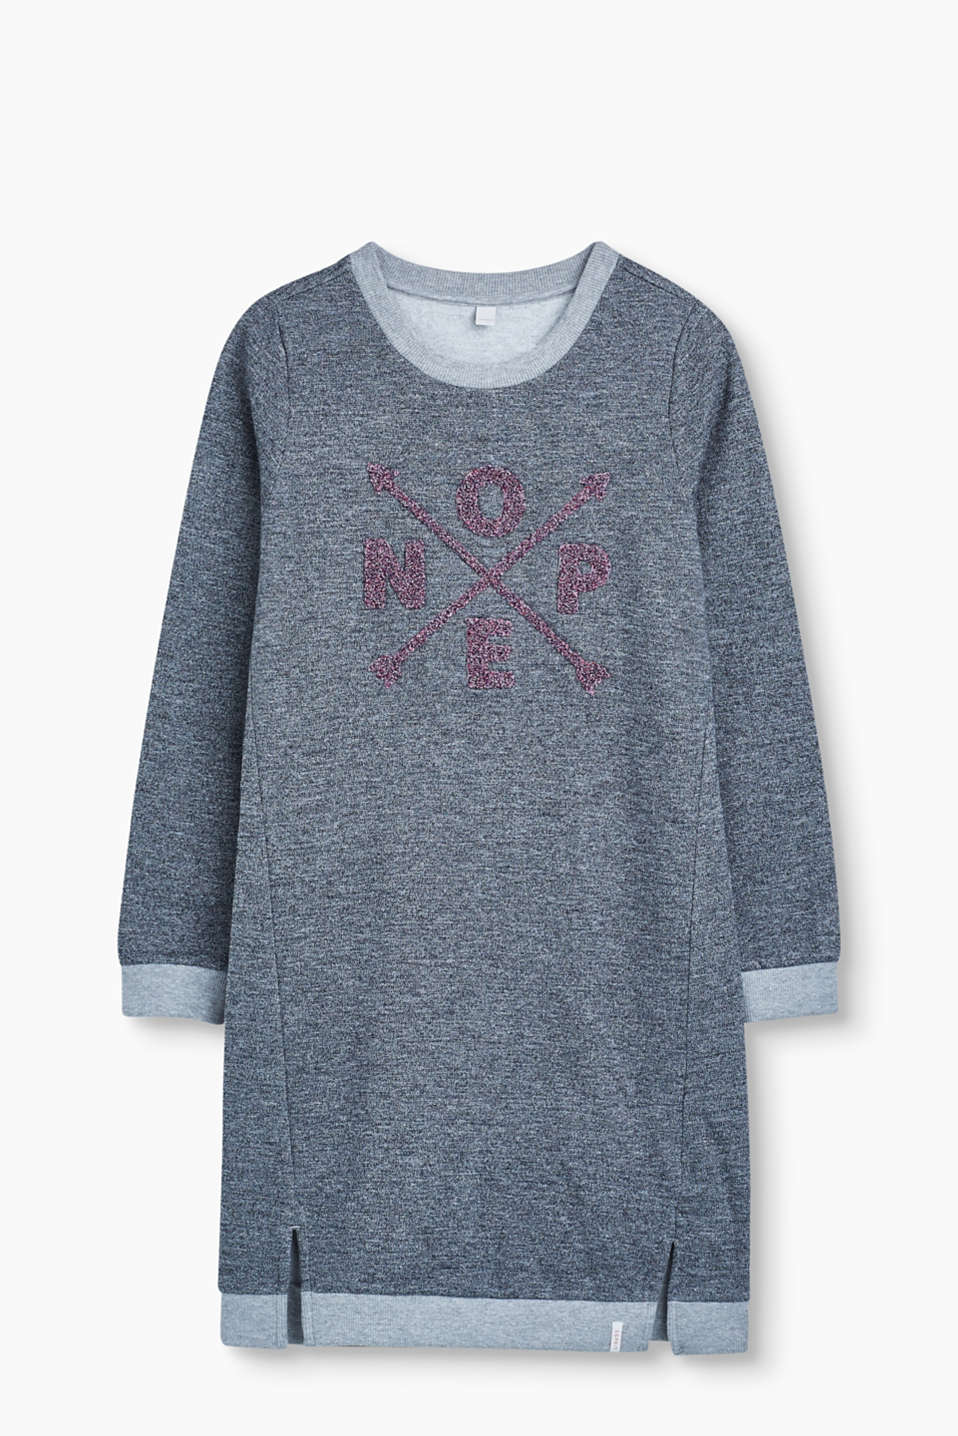 Esprit - Melange sweatshirt dress with embroidery